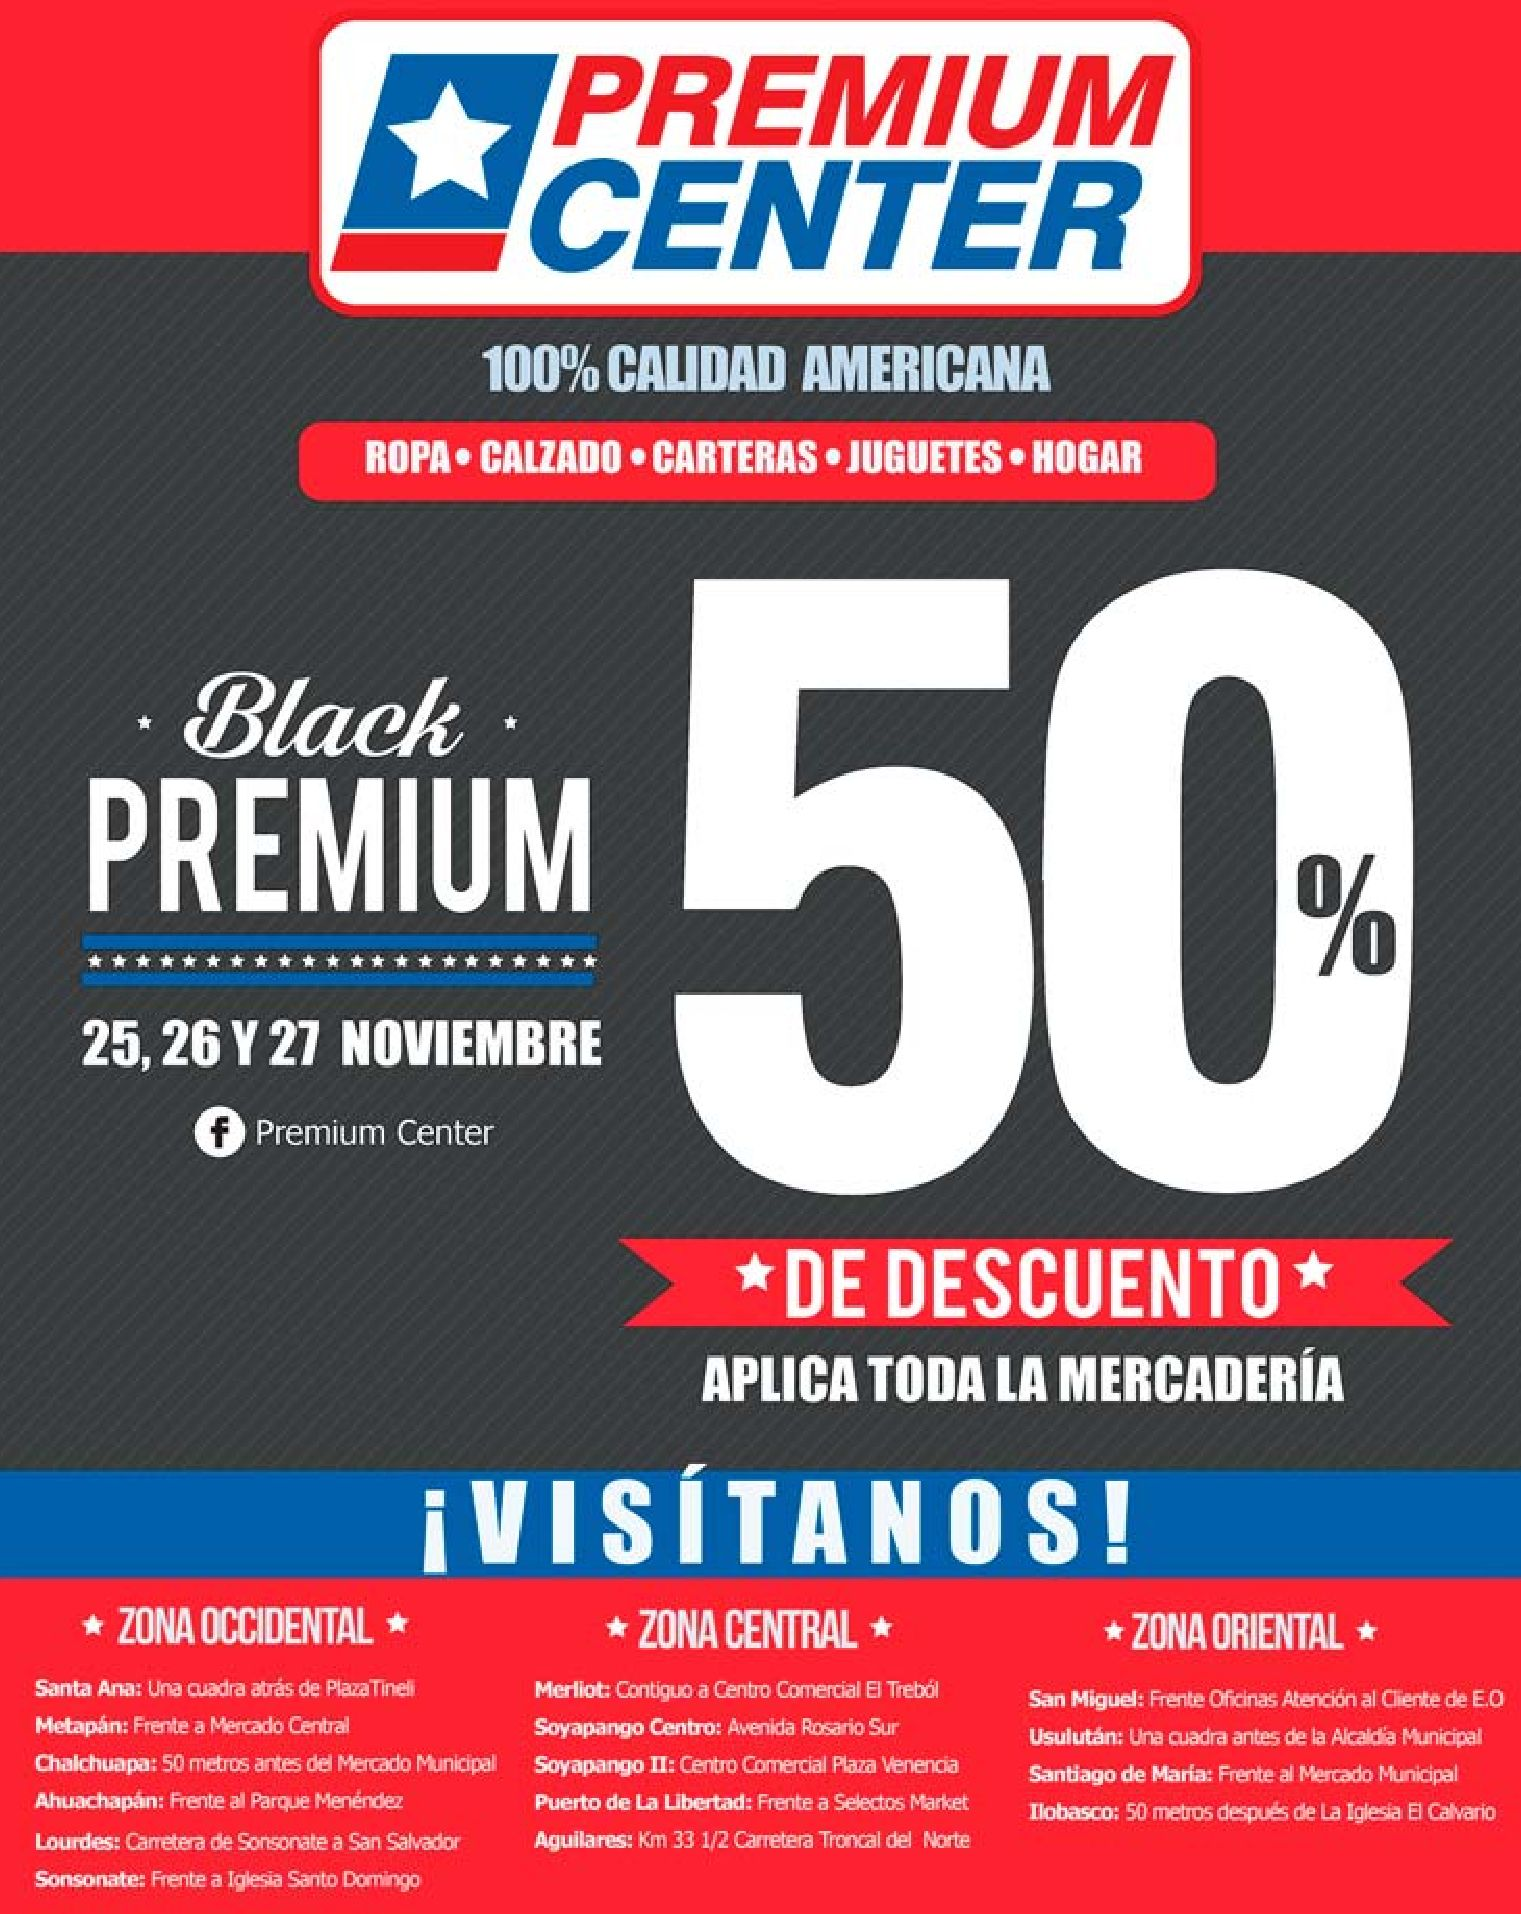 black-premiun-center-sport-prodcutos-en-toda-la-mercaderia